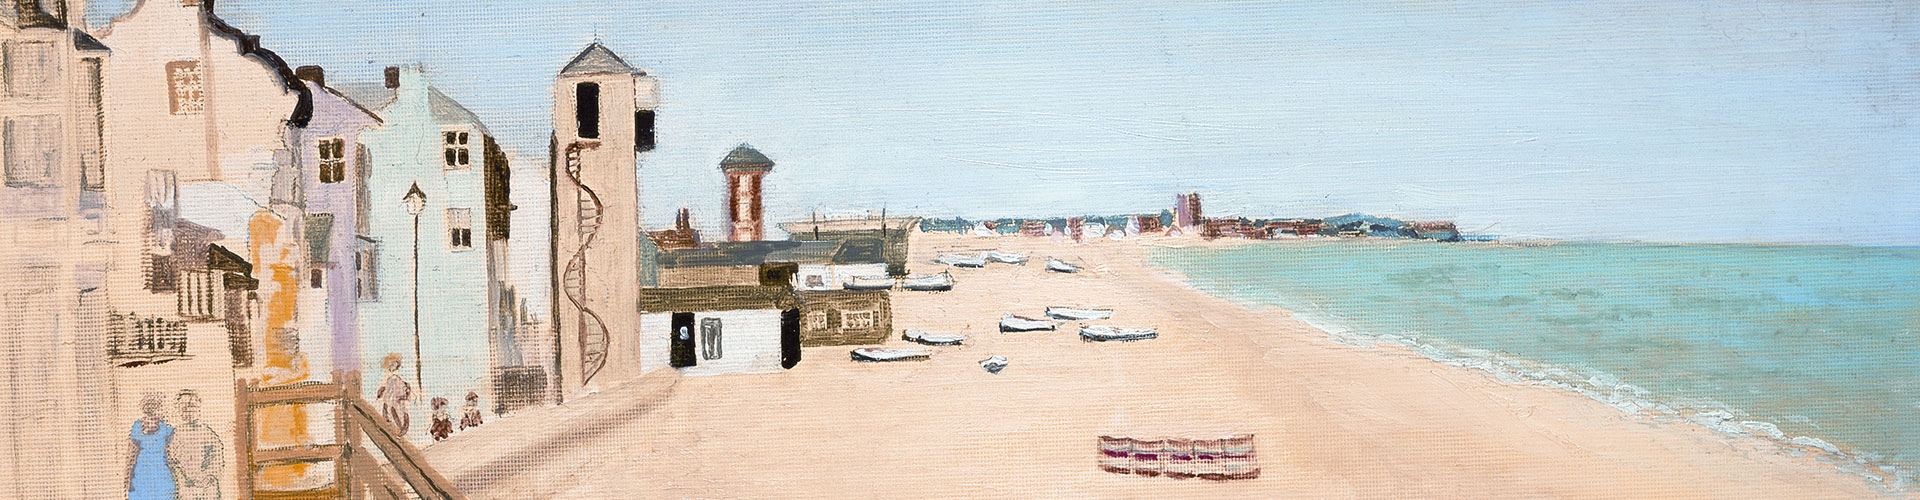 Aldeburgh Beach, August, Greeting Card by Susanna Stanley - Featured on Desktop Devices